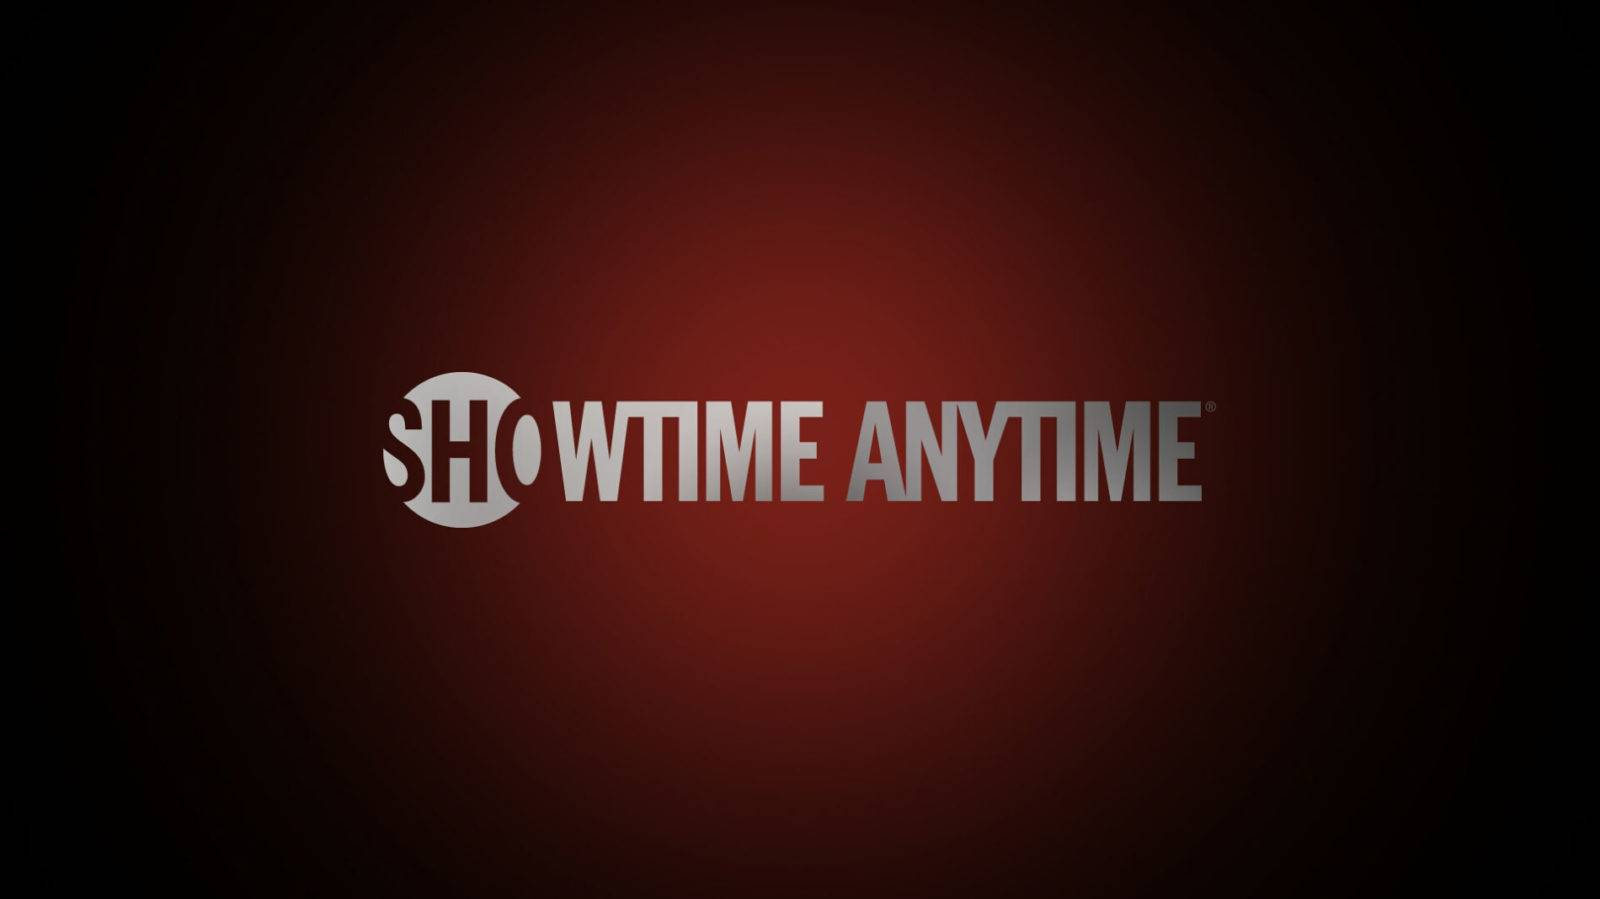 Showtime Anytime-6